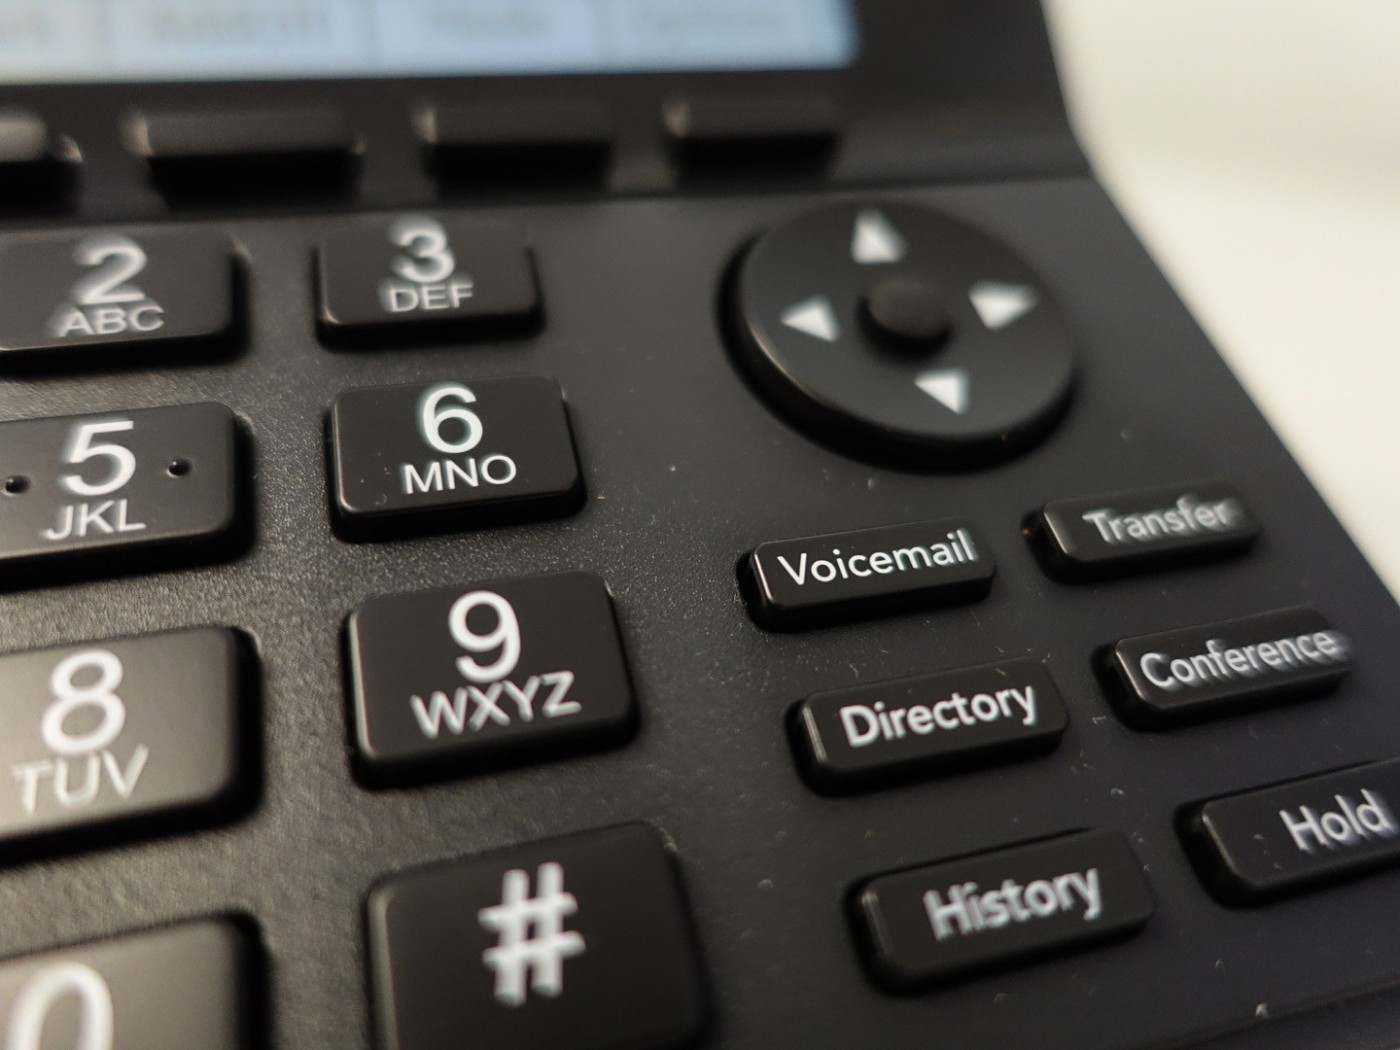 Phone - Voicemail physical button